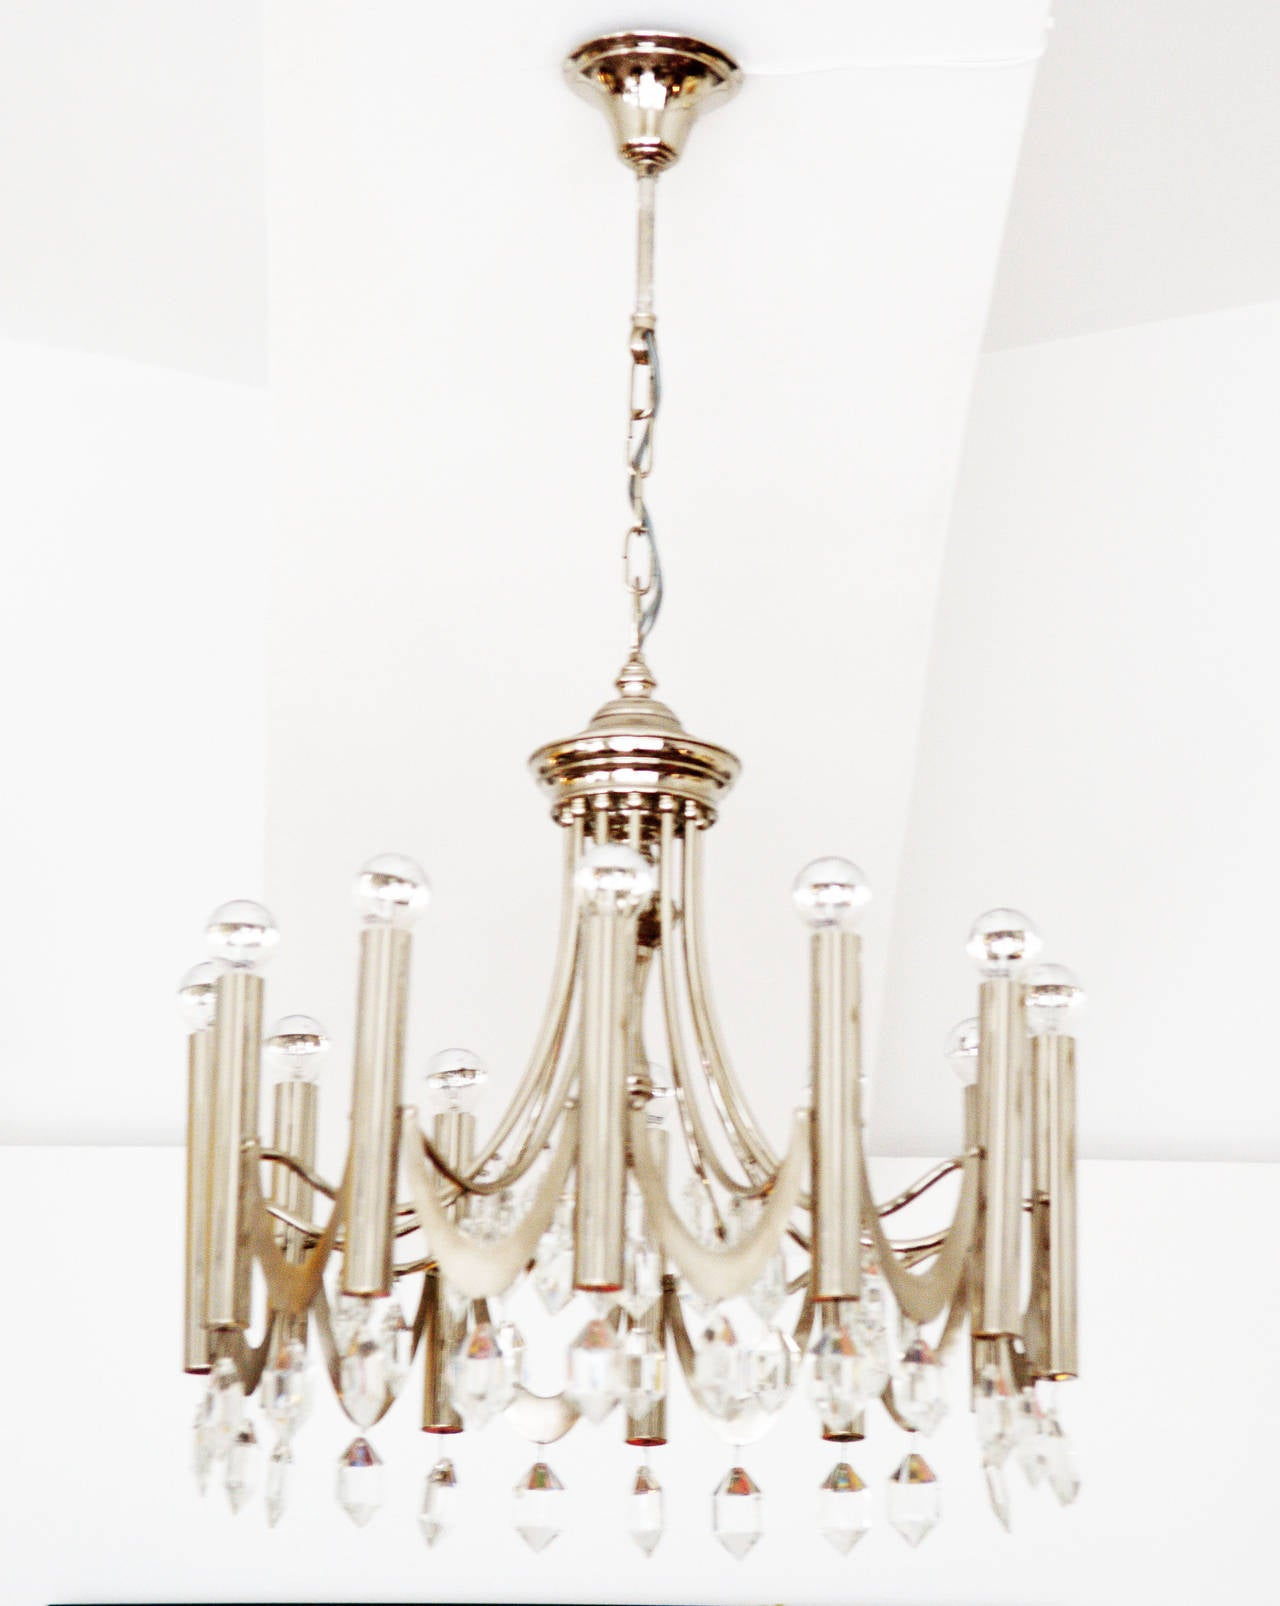 Austrian Large Chandelier Attributed to Gaetano Sciolari from 1960s For Sale